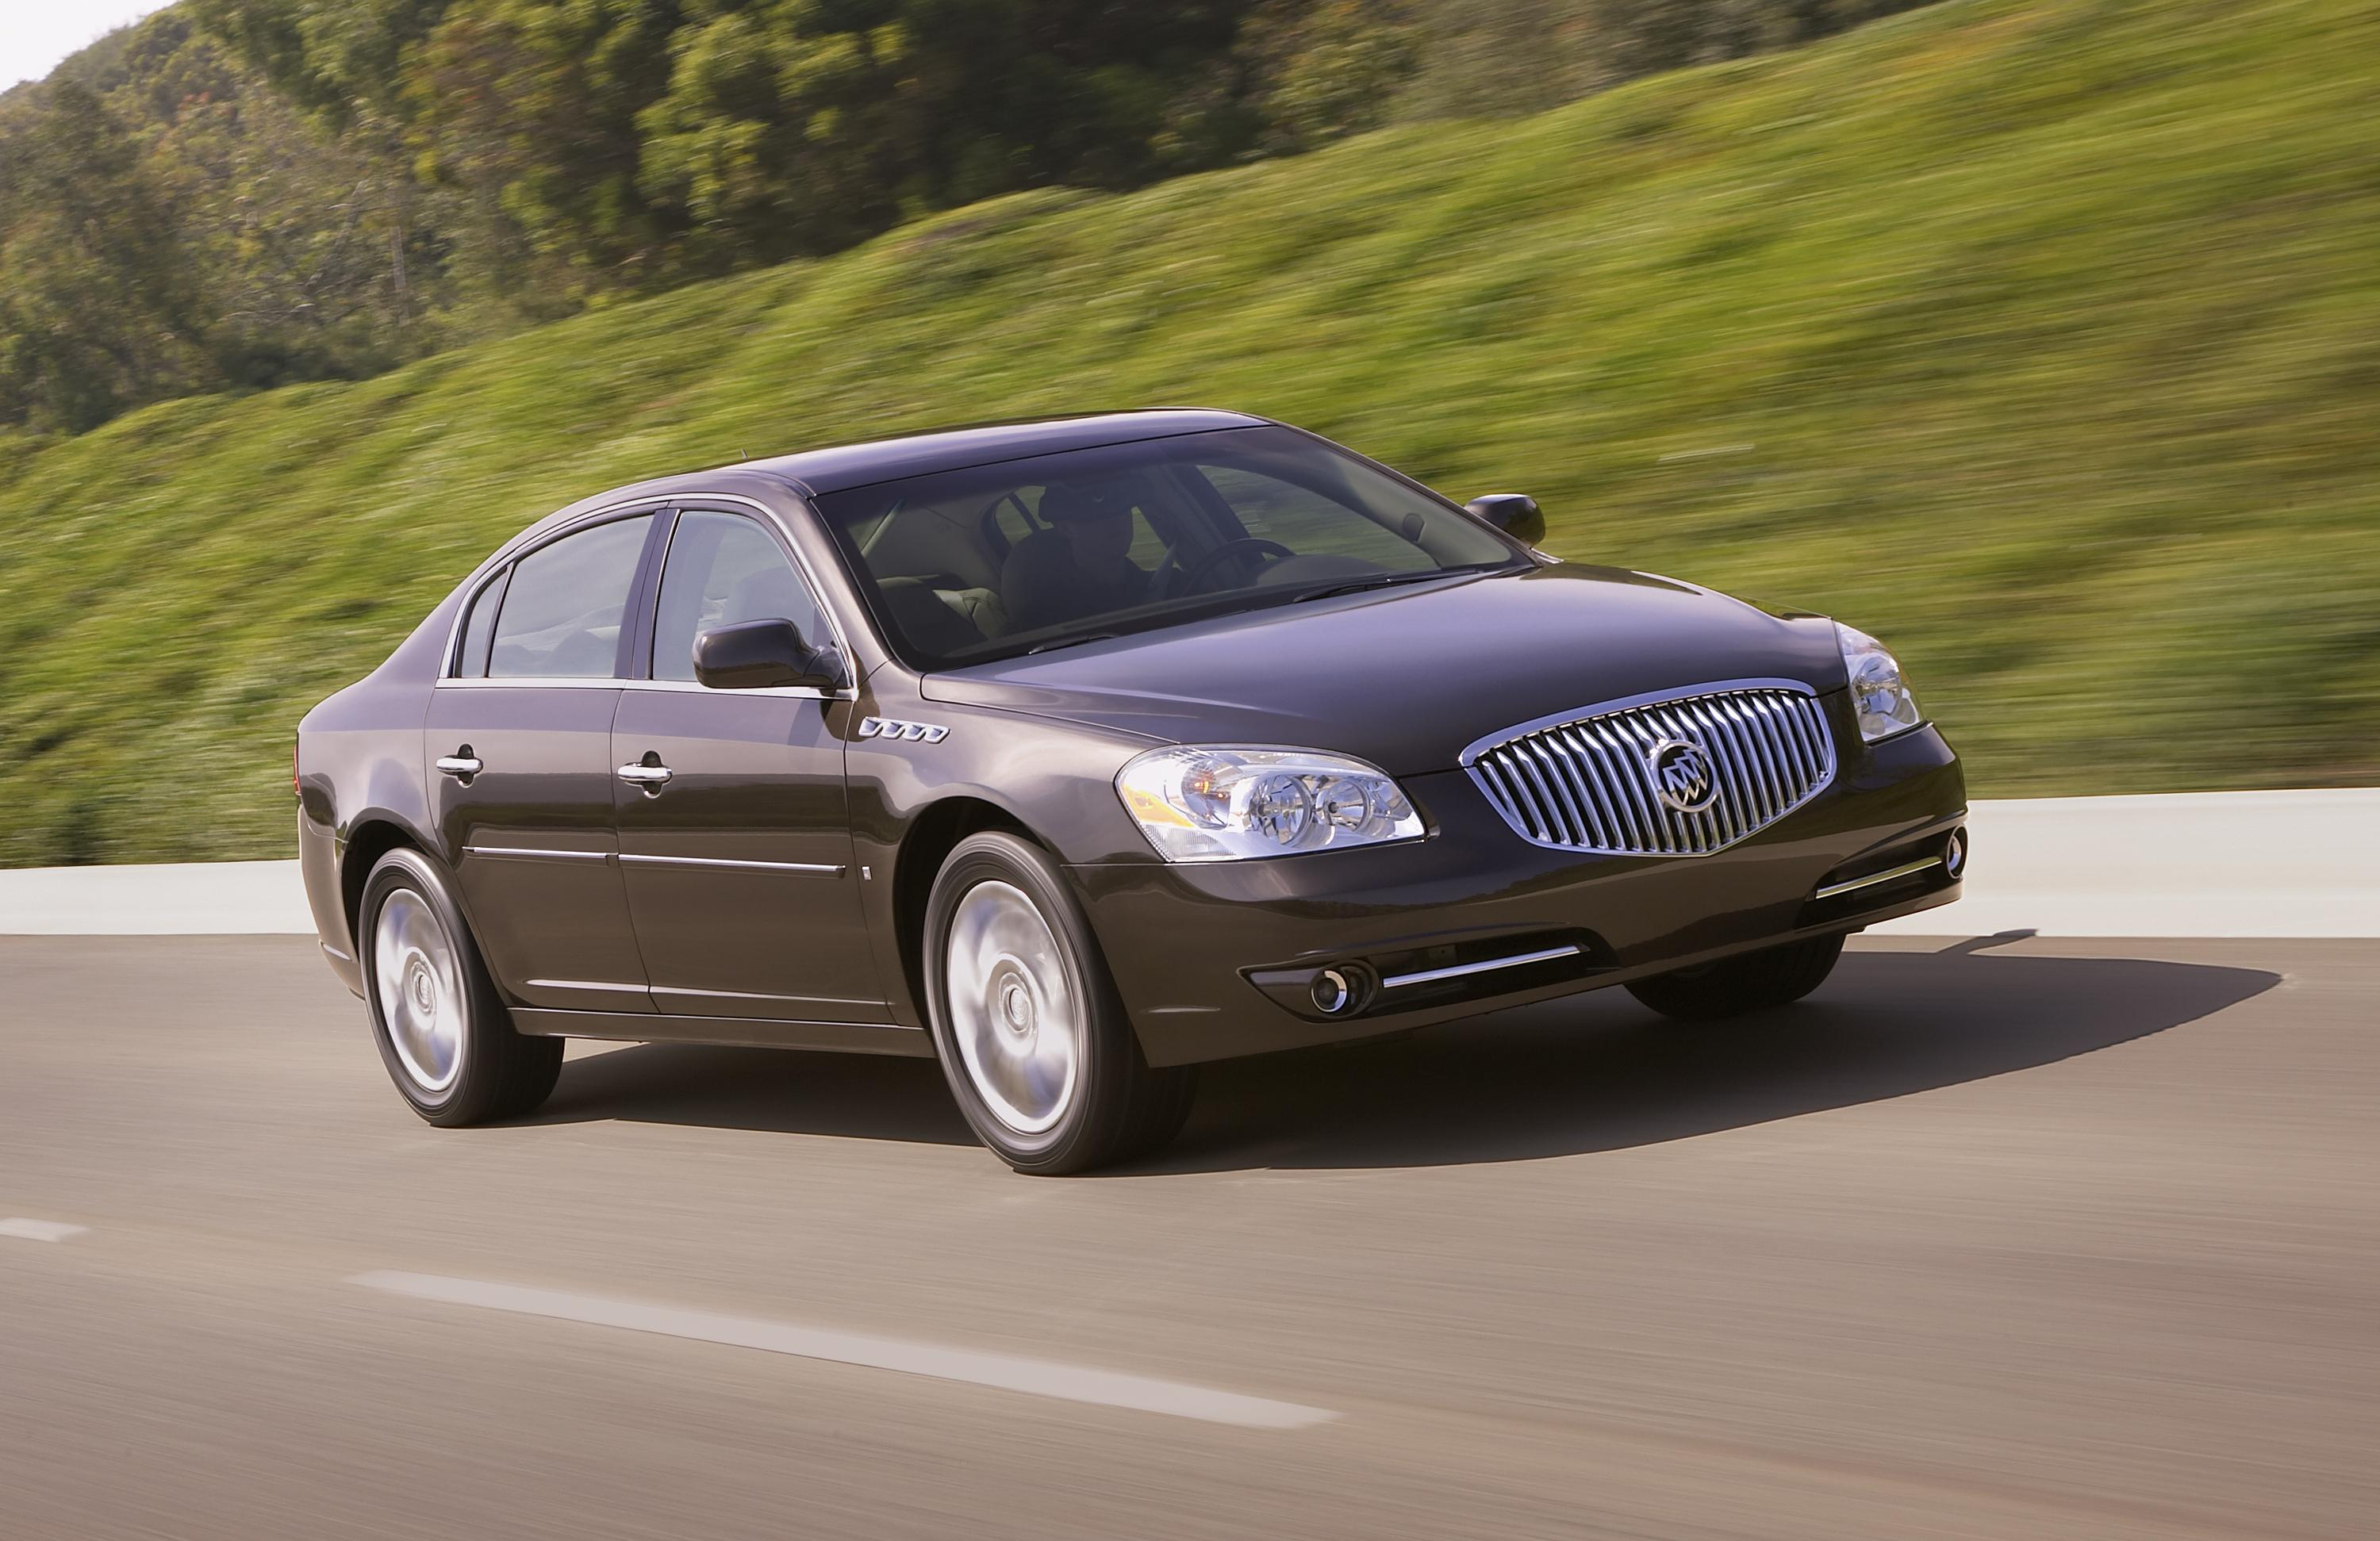 2008 buick lucerne super review gallery top speed. Black Bedroom Furniture Sets. Home Design Ideas